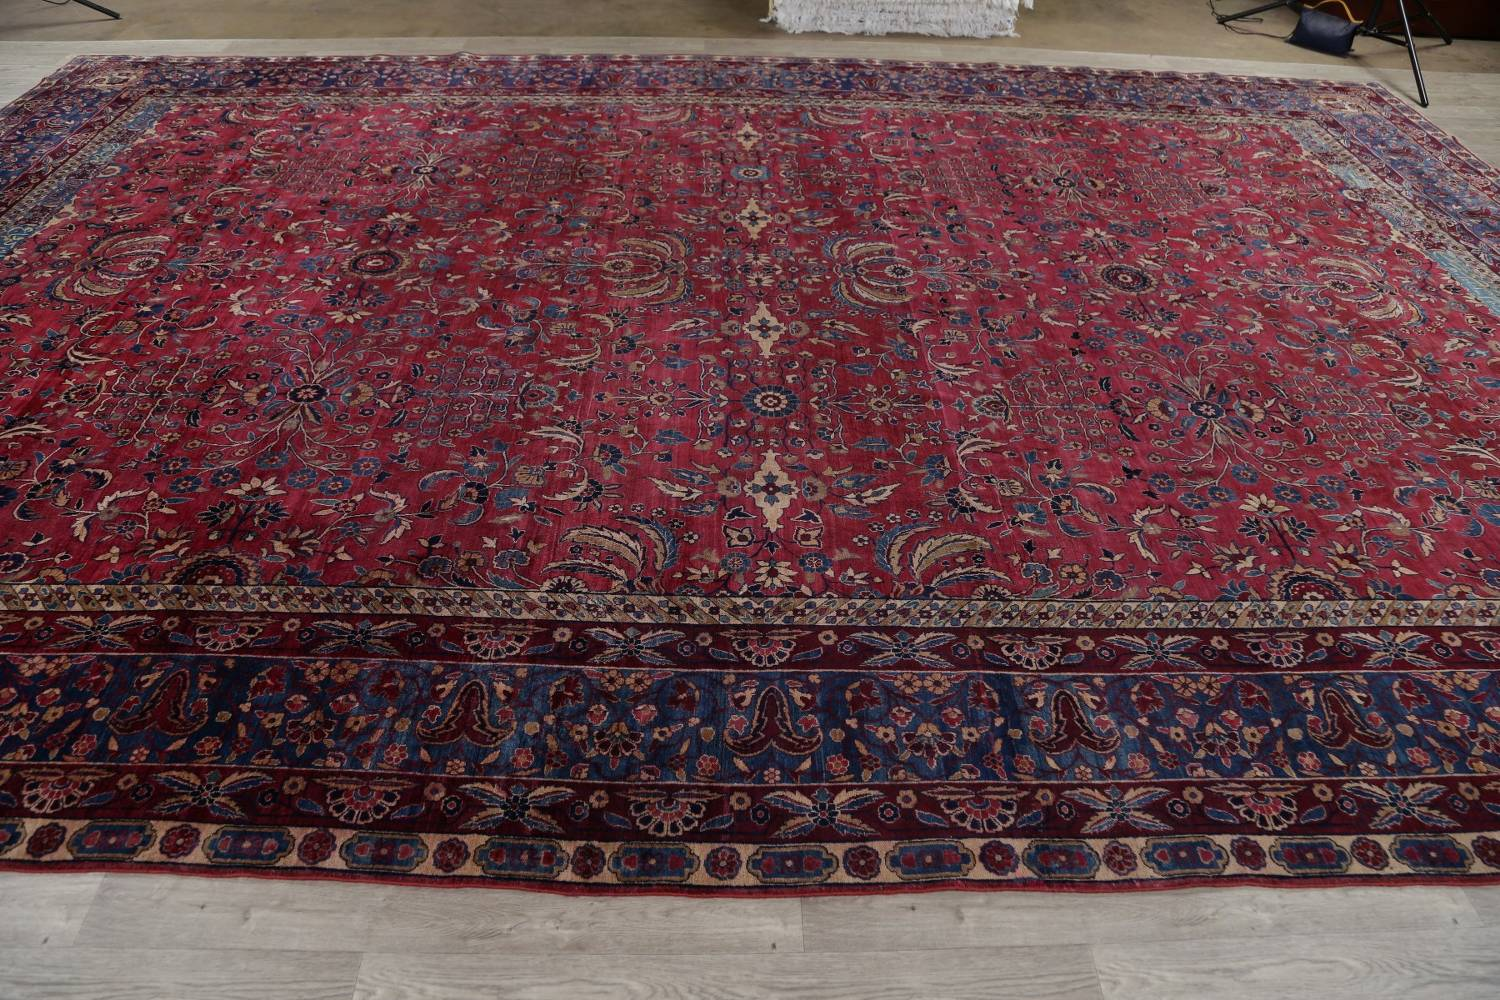 Pre-1900 Antique Floral Sultanabad Persian Hand-Knotted 12x18 Wool Rug image 23